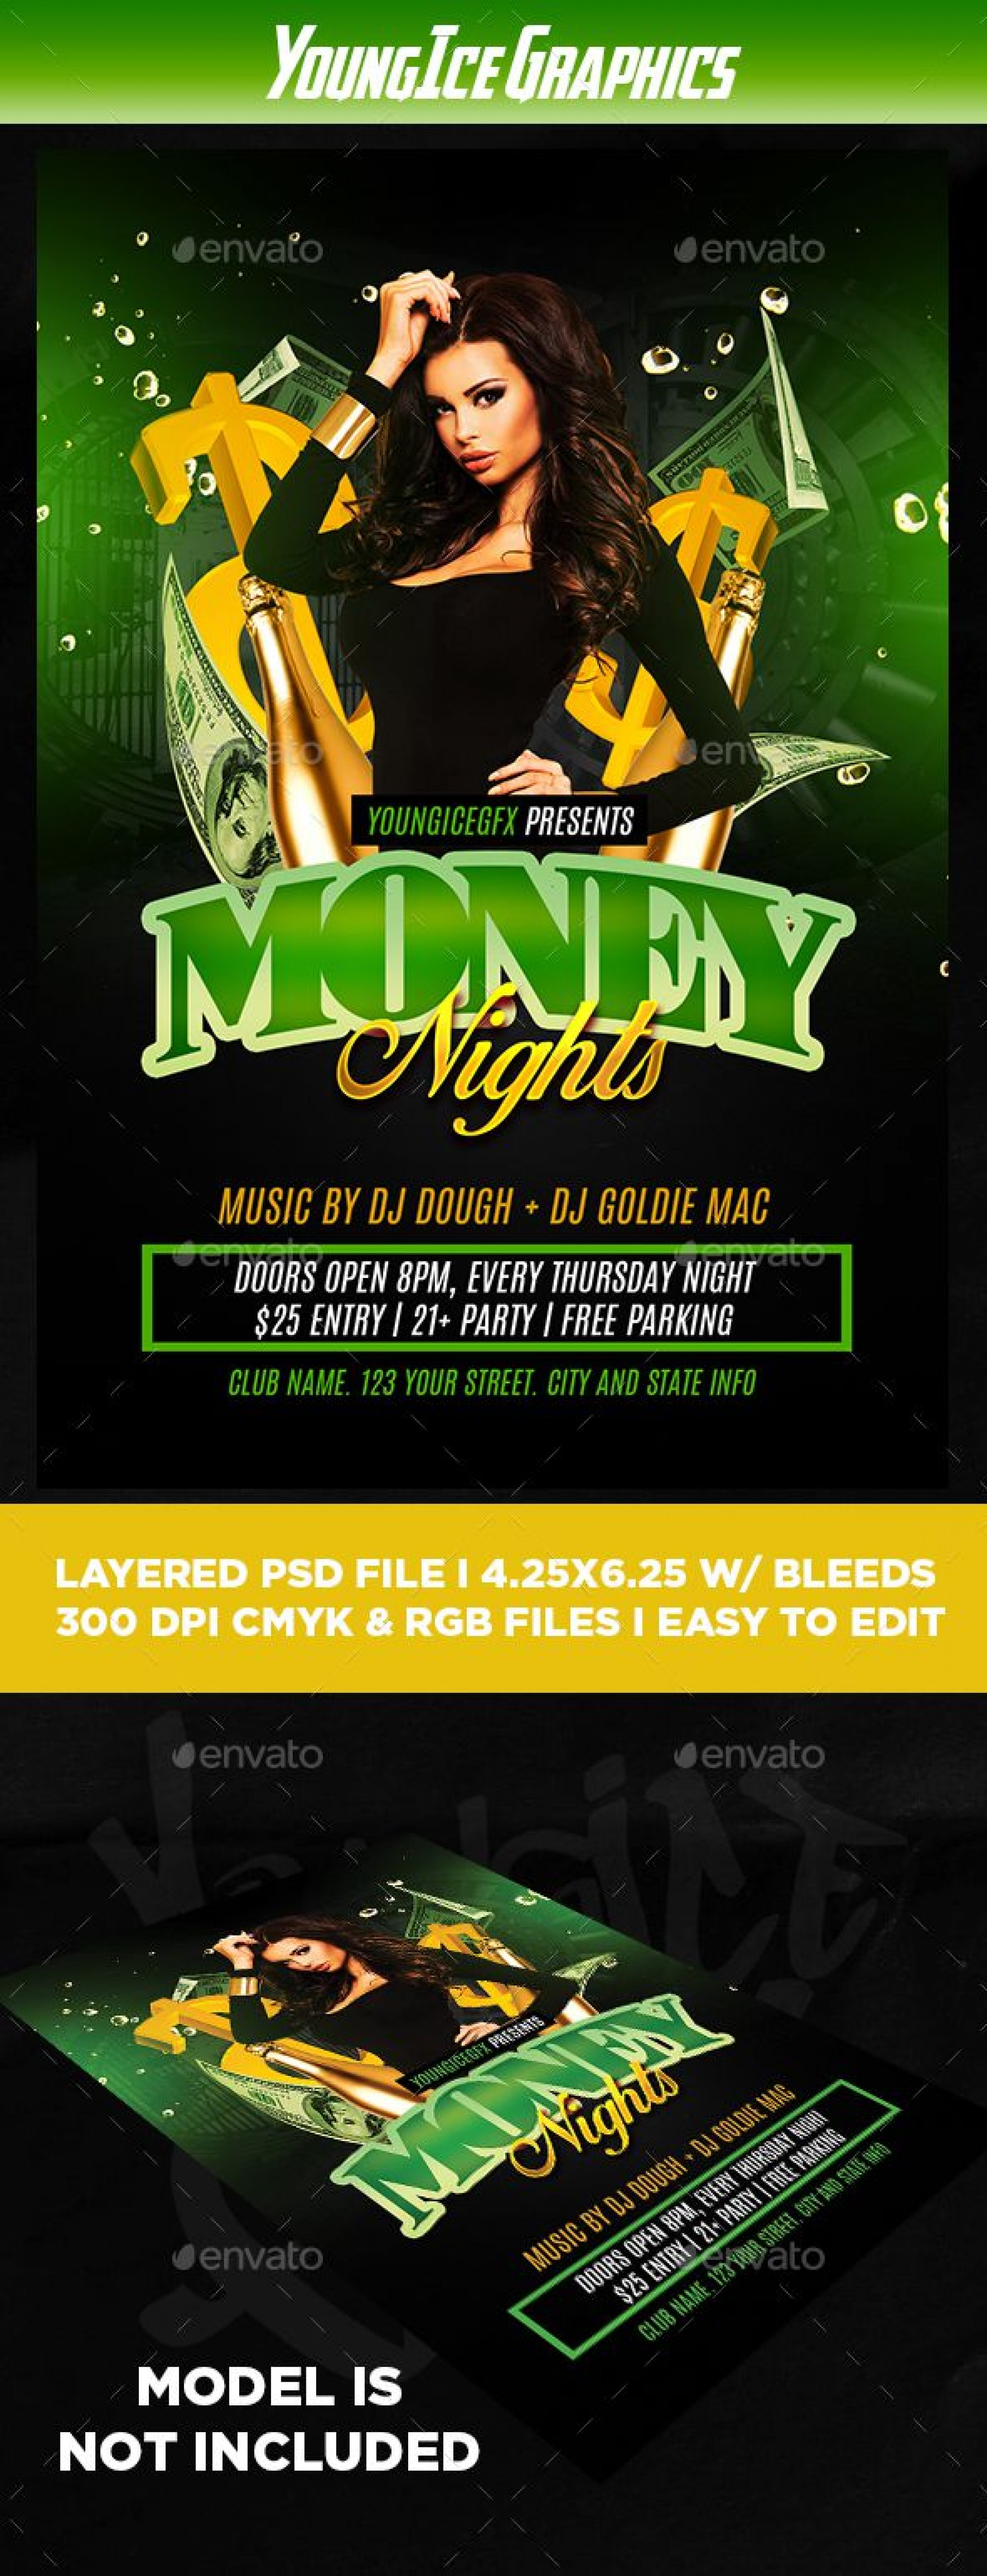 009 Dreaded Free Party Flyer Template For Mac Highest Clarity 1920